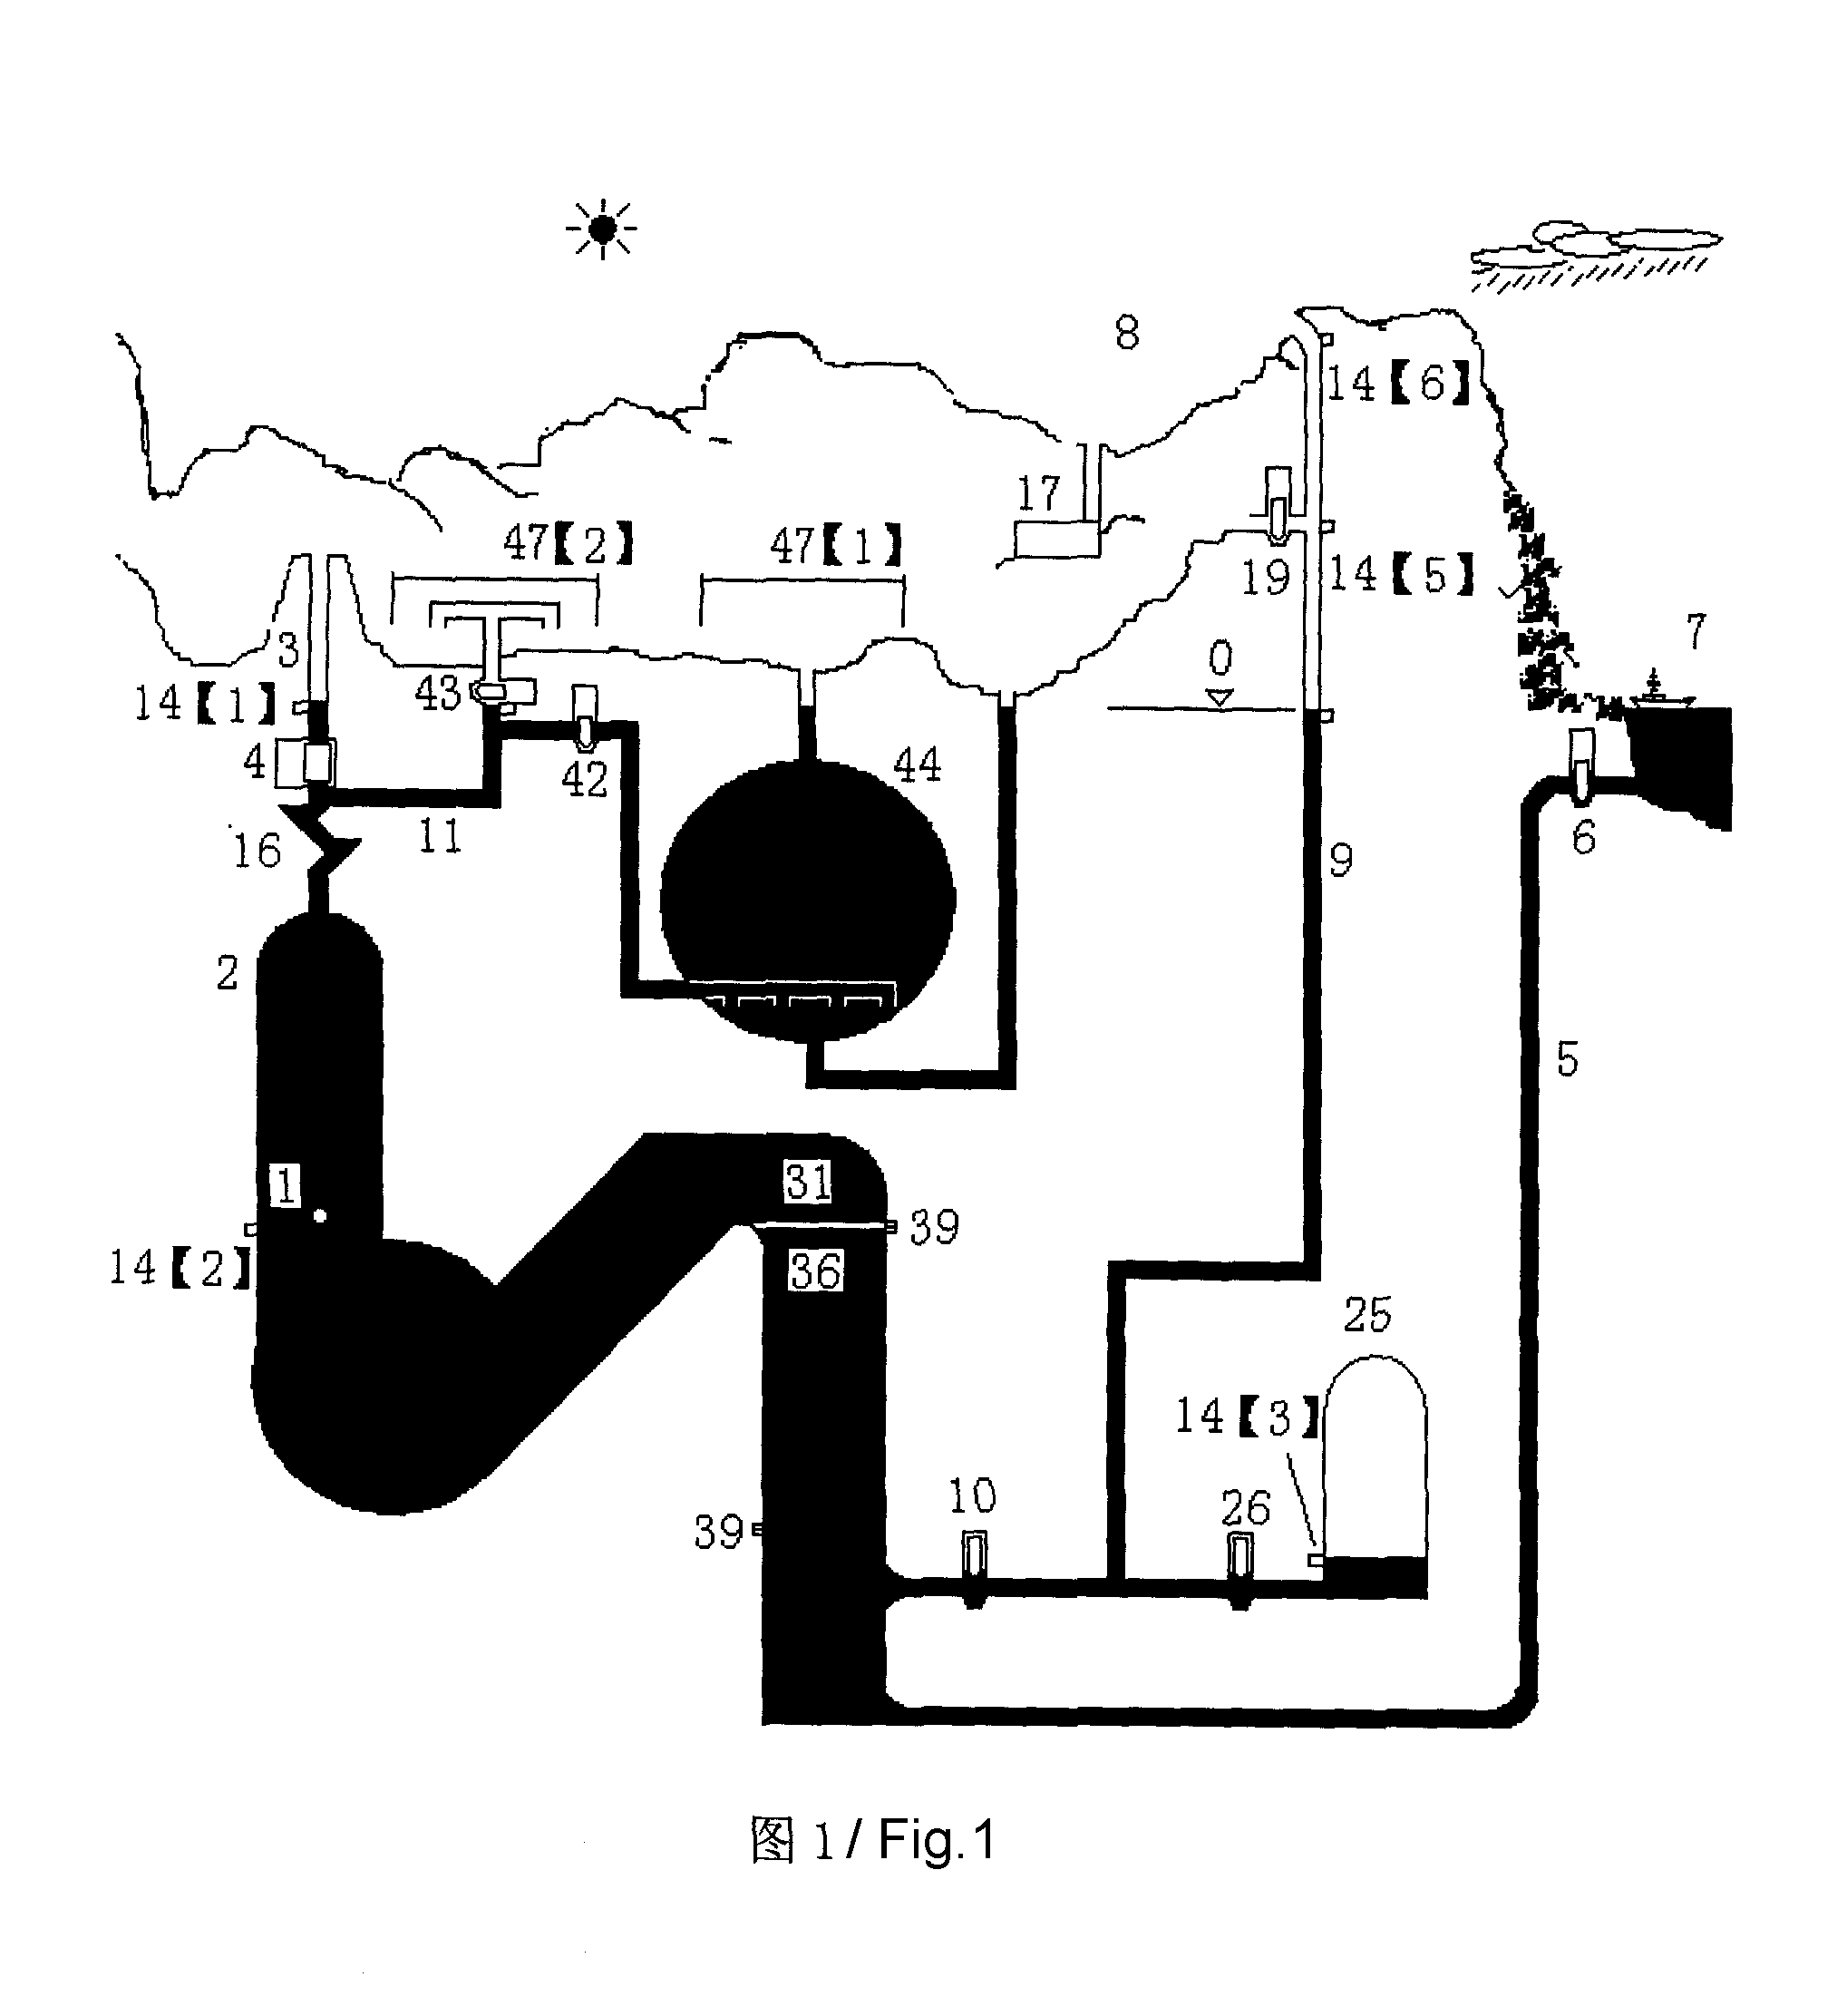 WO2013063860A1 NUCLEAR IMPLOSION TWO-STROKE ENGINE WITH